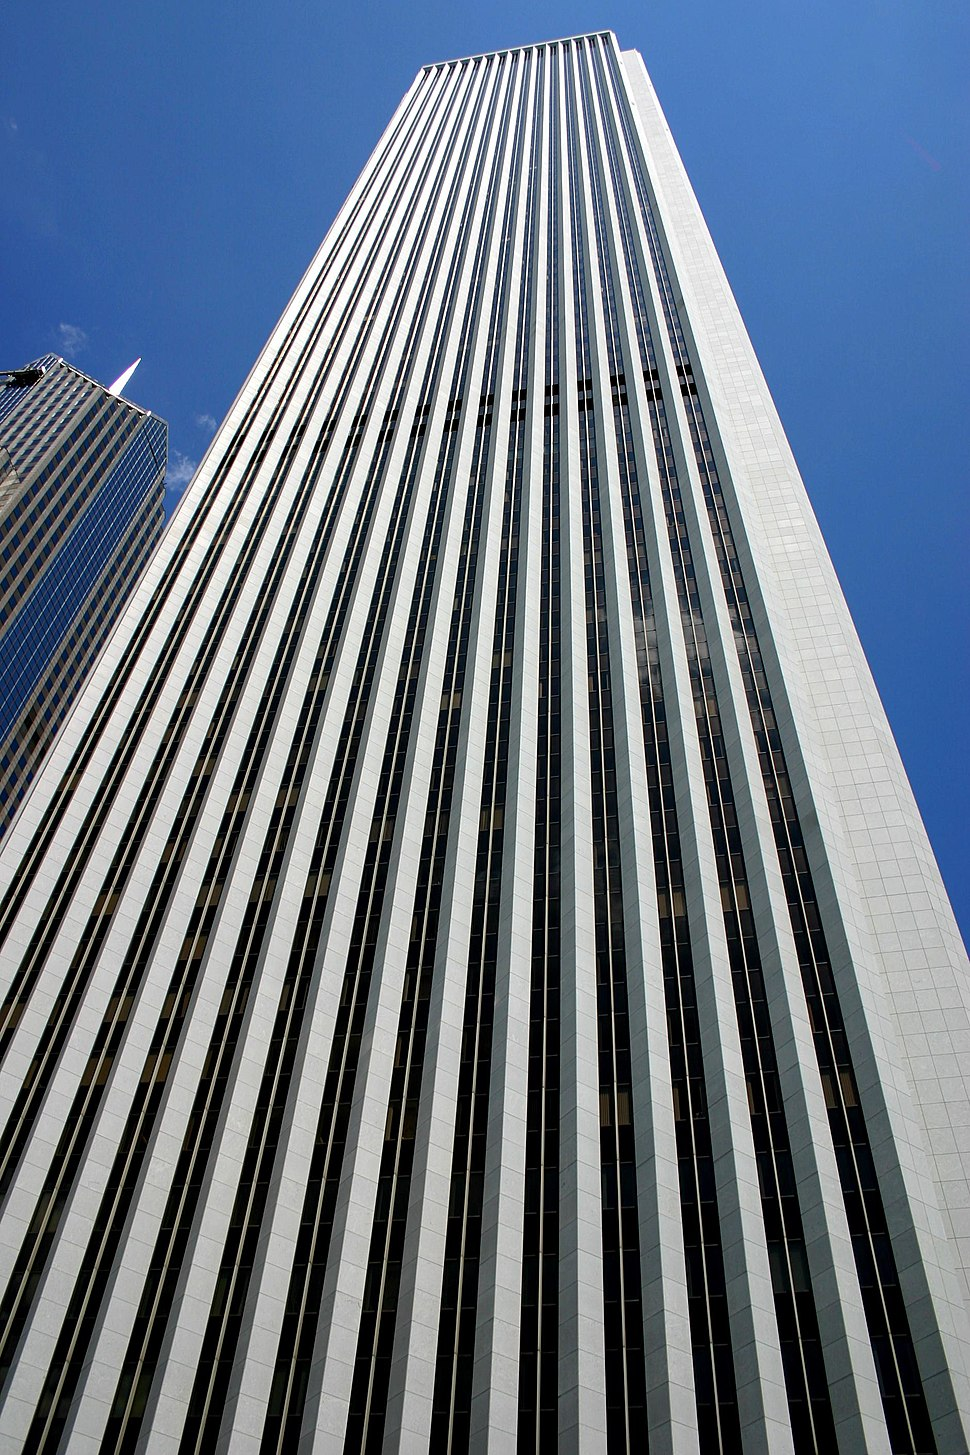 Aon Center in Chicago was the tallest structure clad in marble upon its completion. The marble however proved to be fragile, and the building was re-clad in a similarly-colored granite at an extreme financial cost.